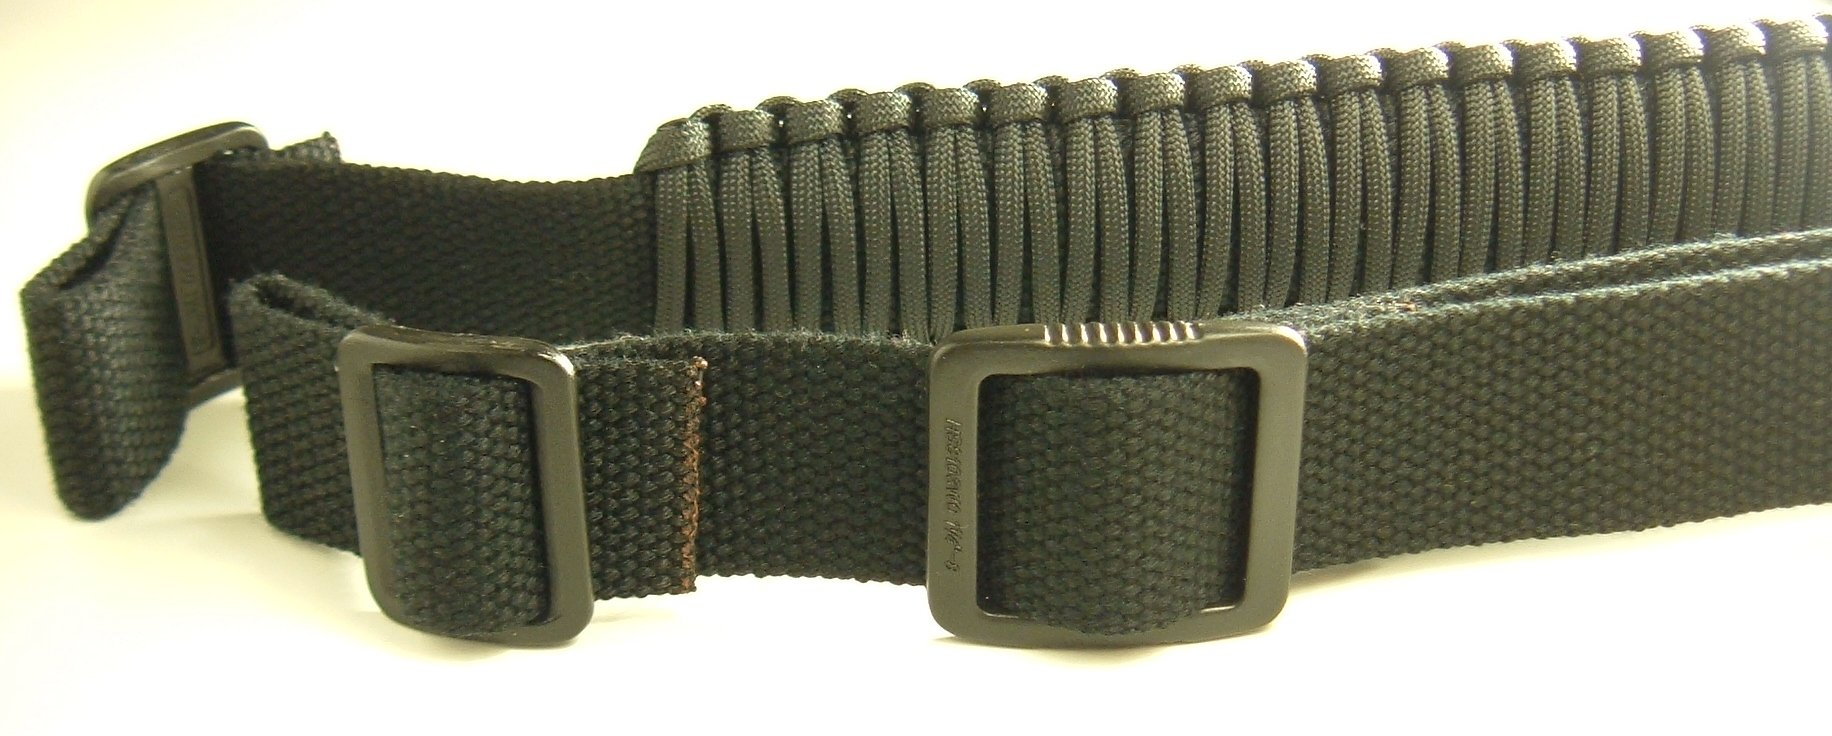 550 lb Para cord Survival 2-Point Rifle Sling